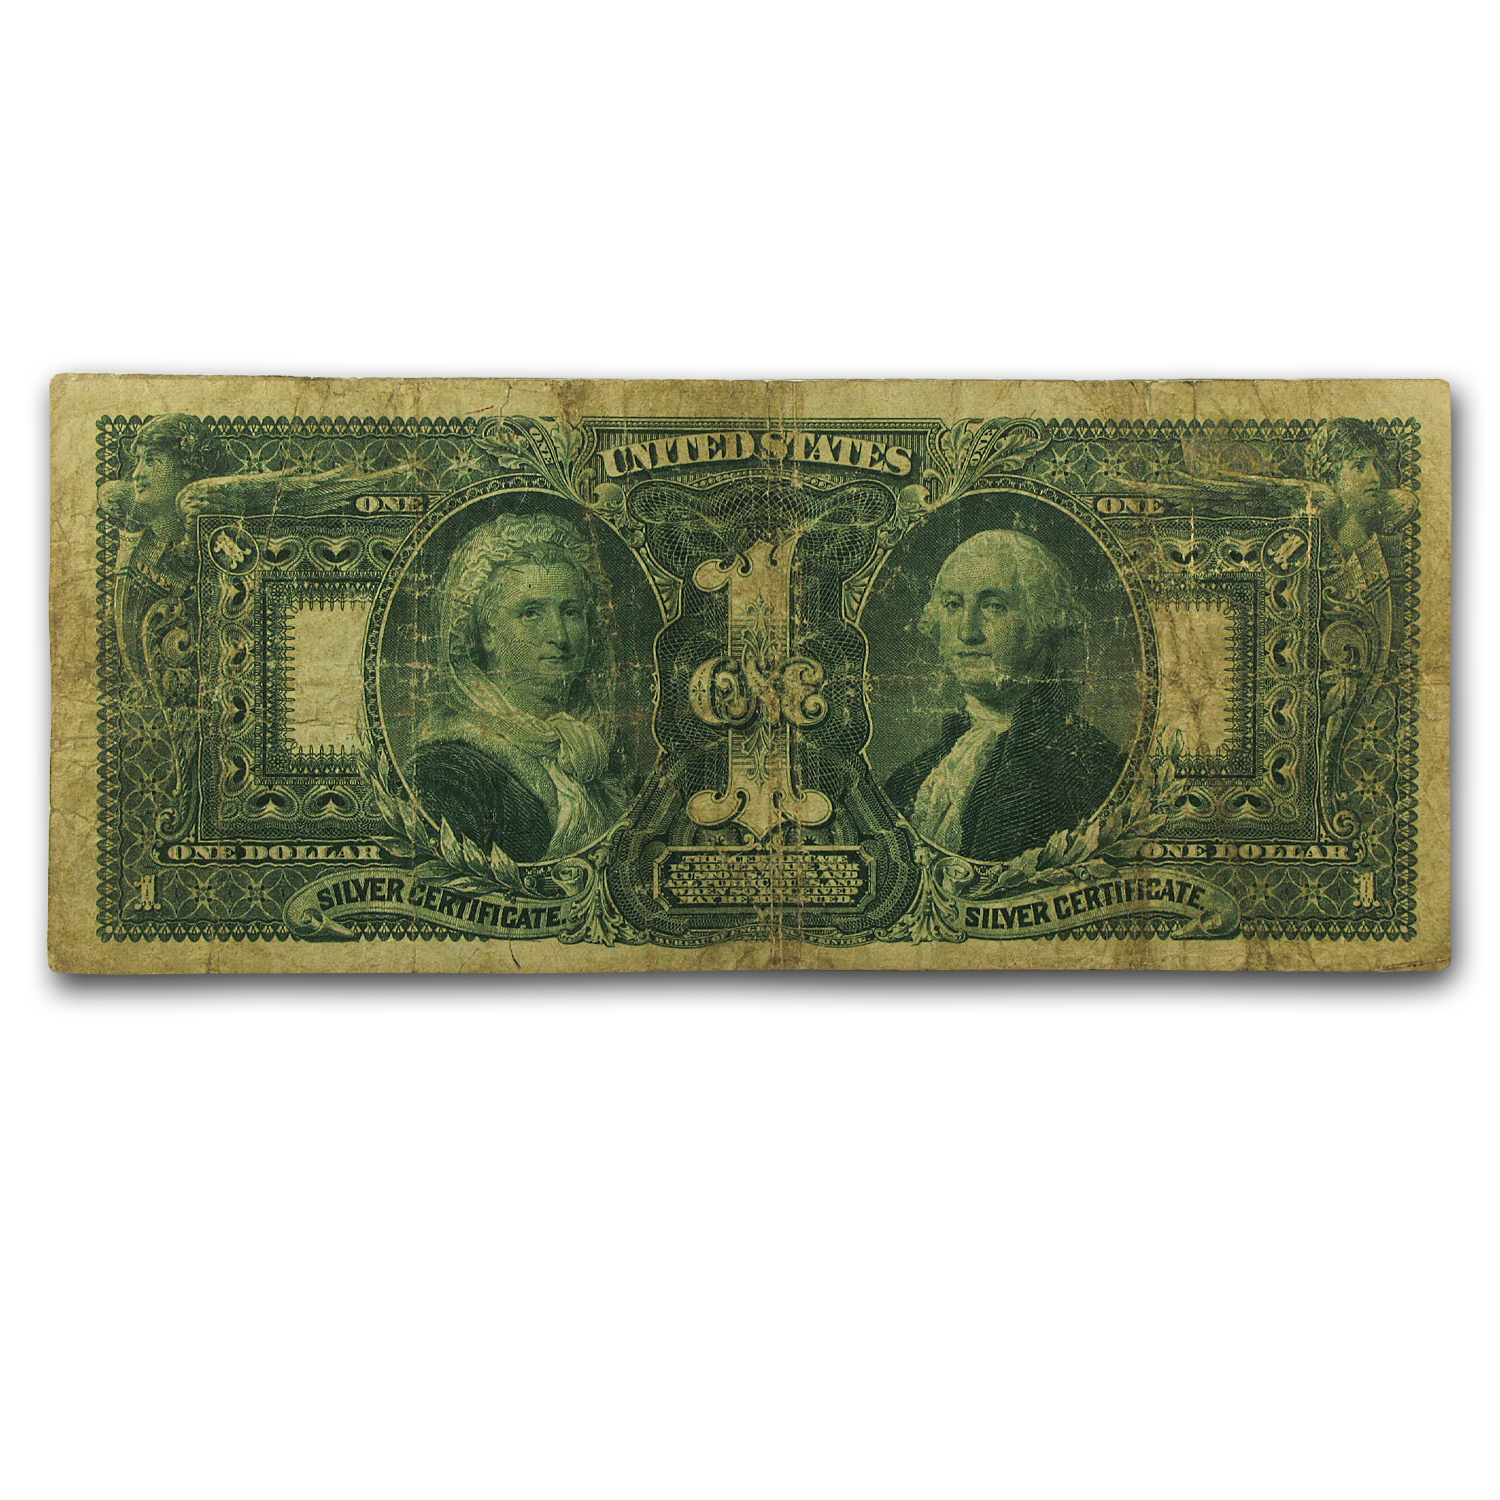 1896 $1.00 Silver Certificate Educational Note VG